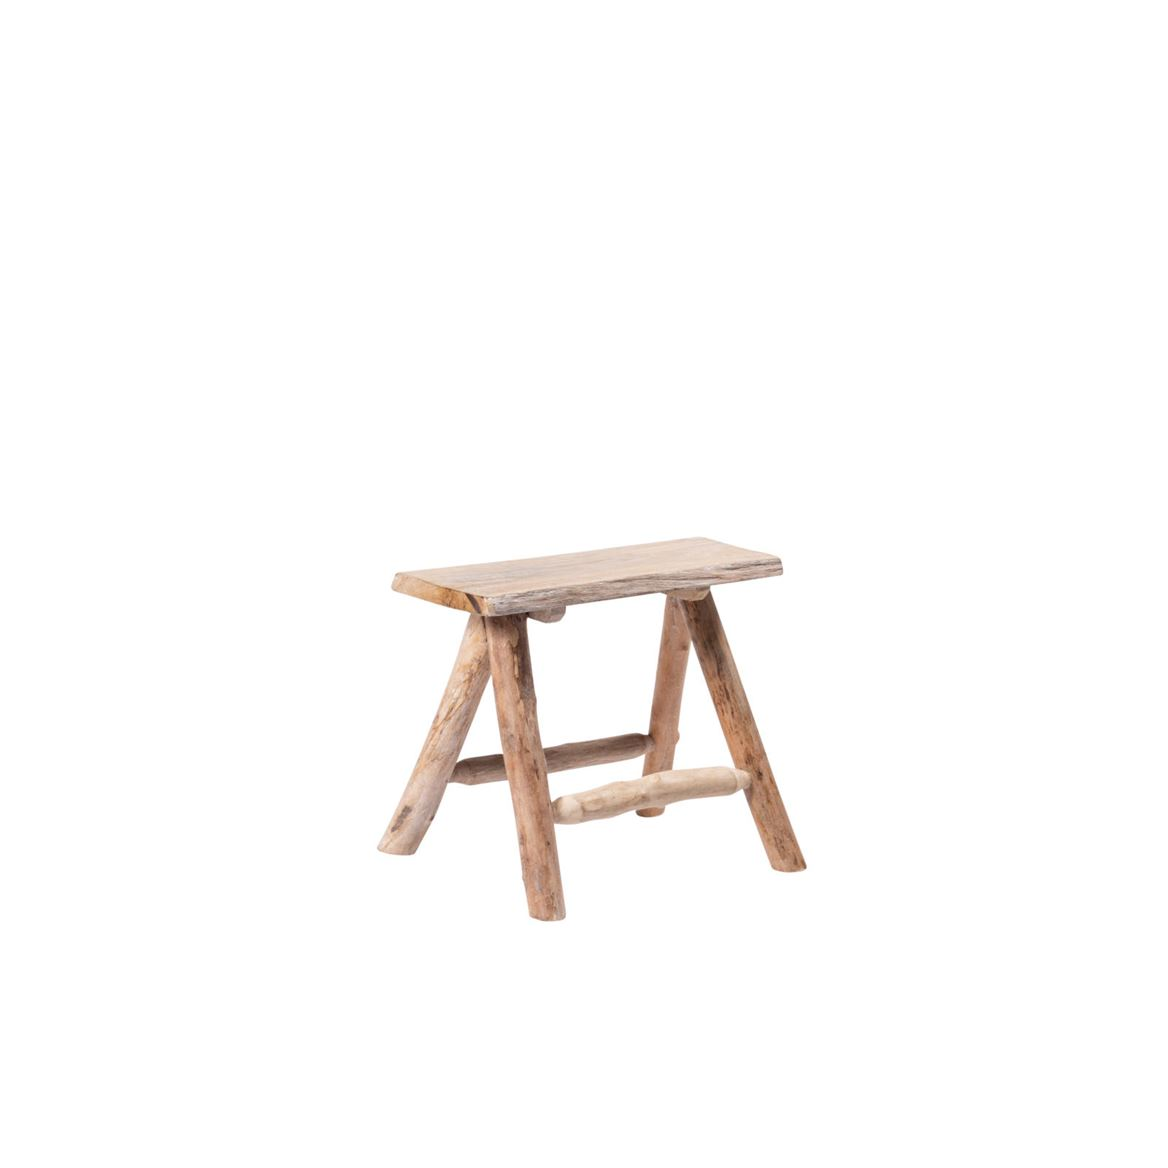 ODILON Hocker Naturell H 36 x B 43 x T 23 cm_odilon-hocker-naturell-h-36-x-b-43-x-t-23-cm